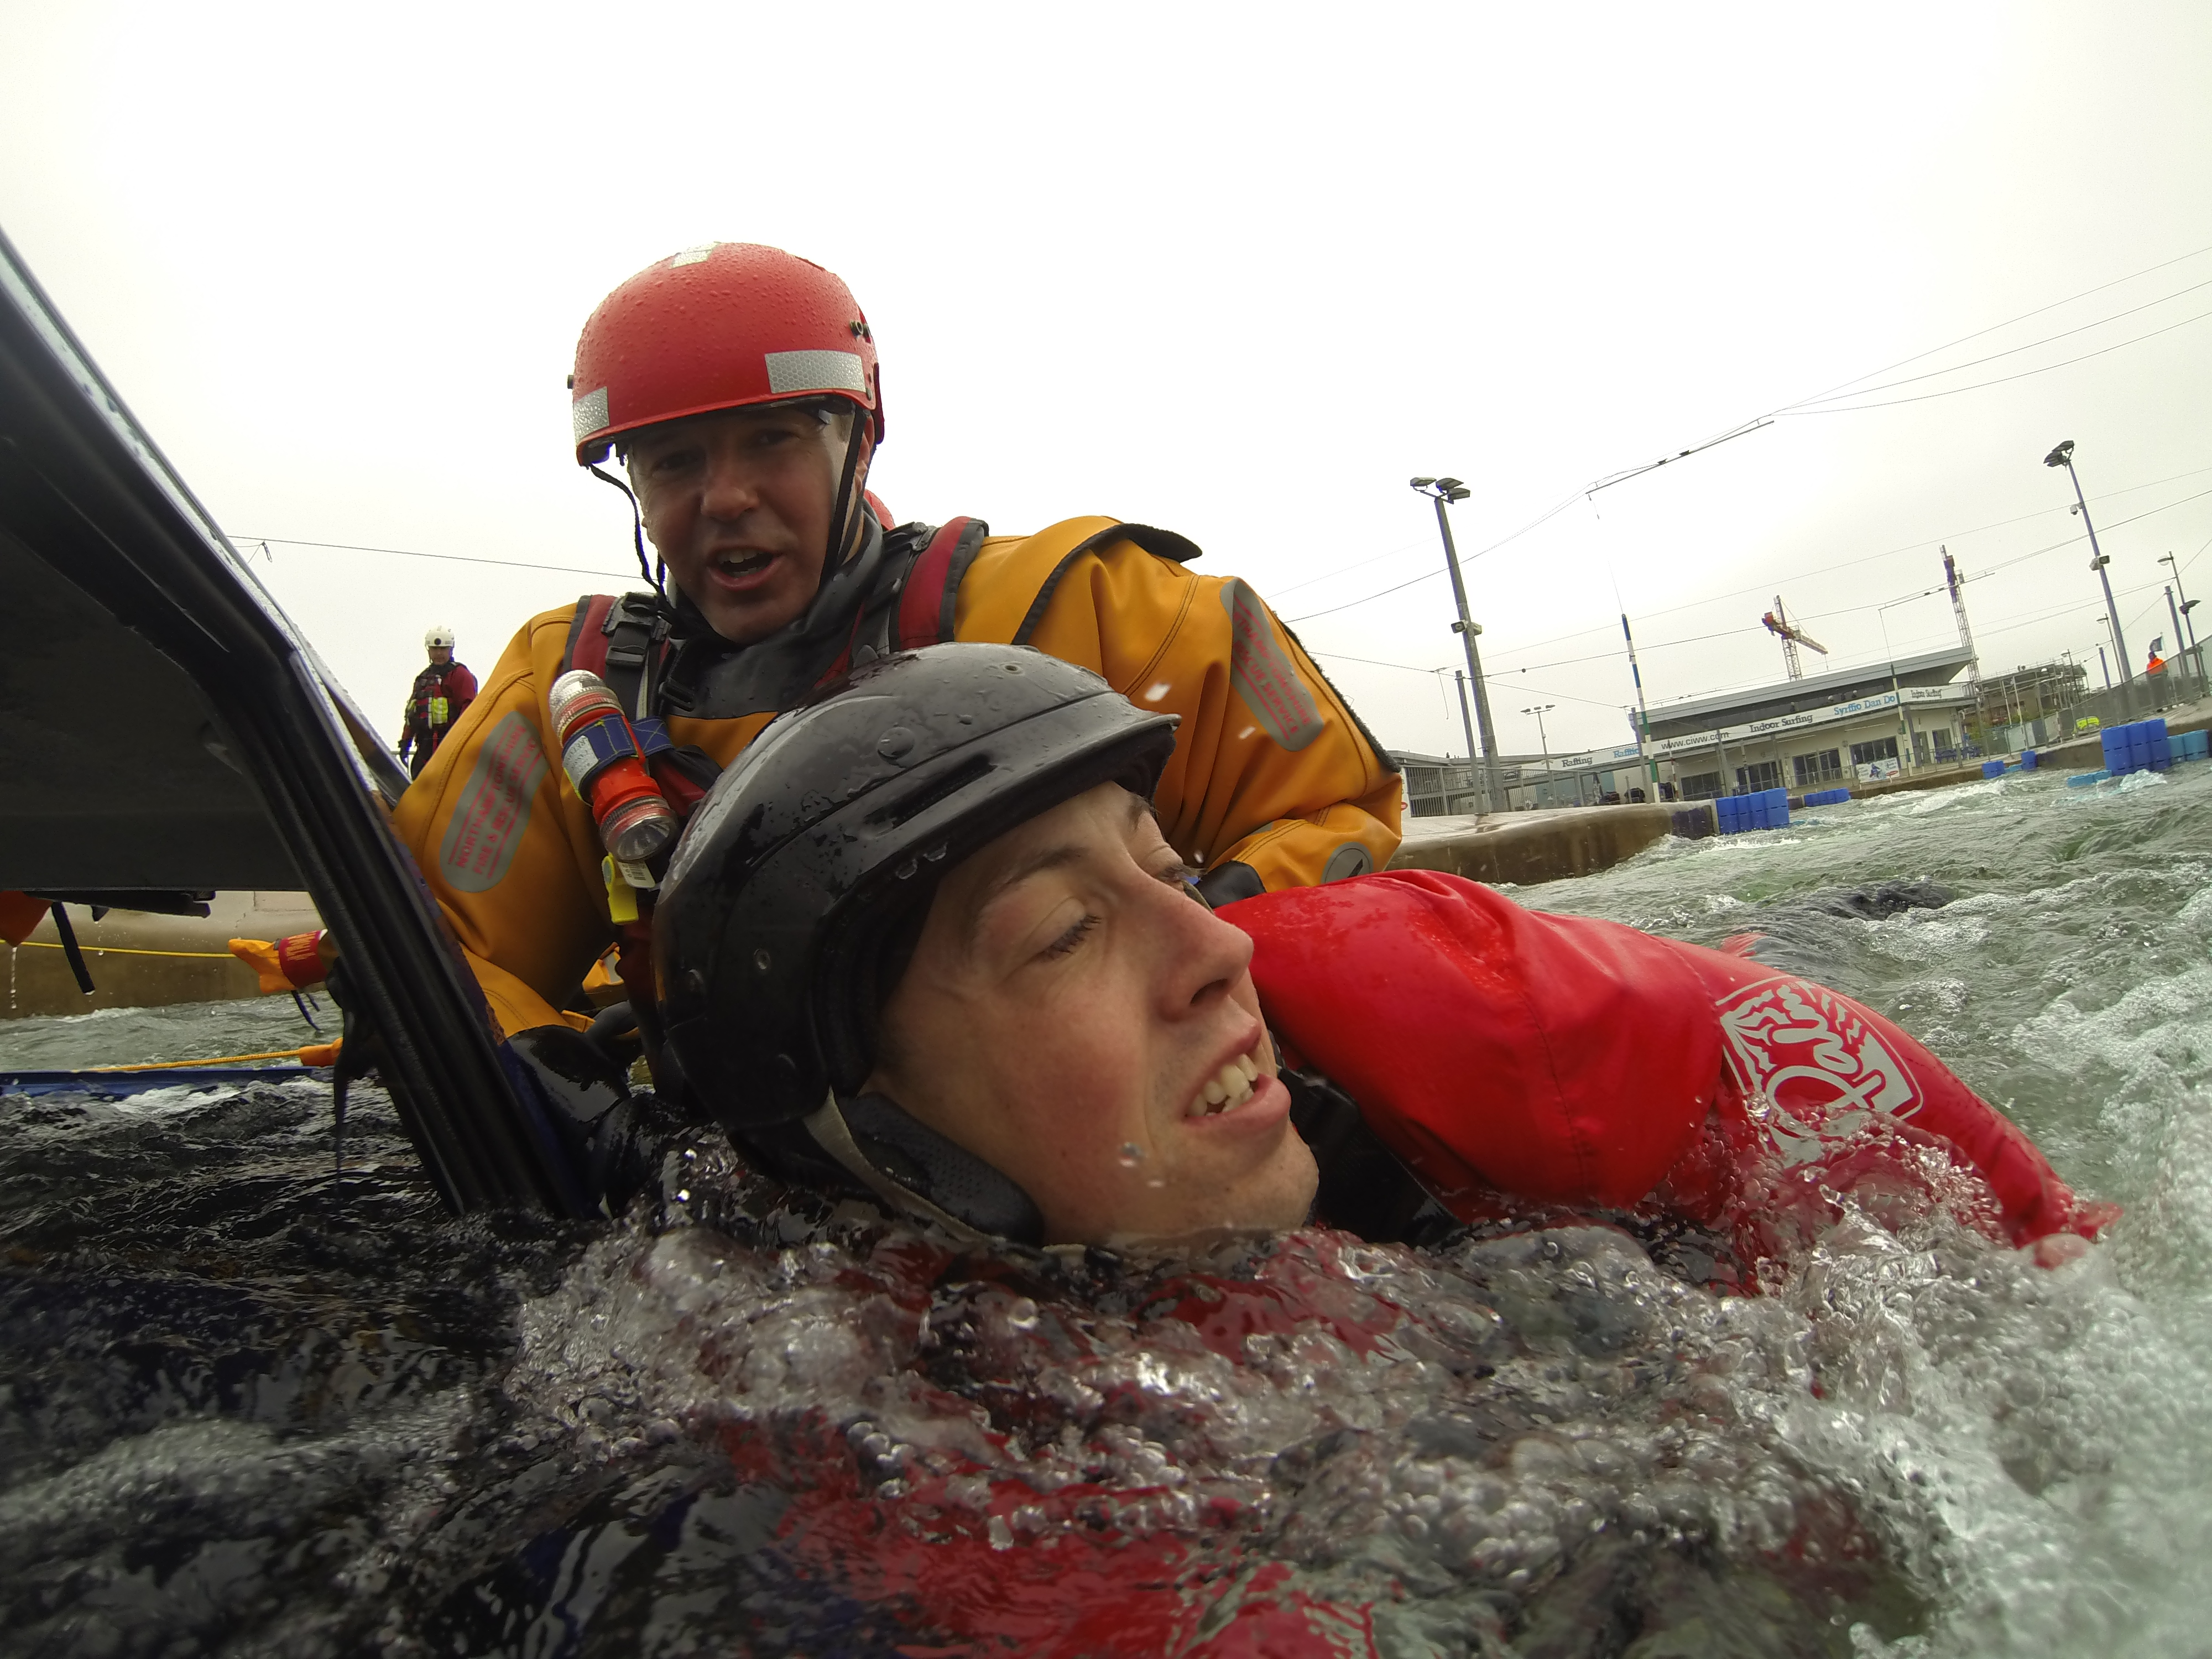 Rescues from Vehicles in Water - Technician